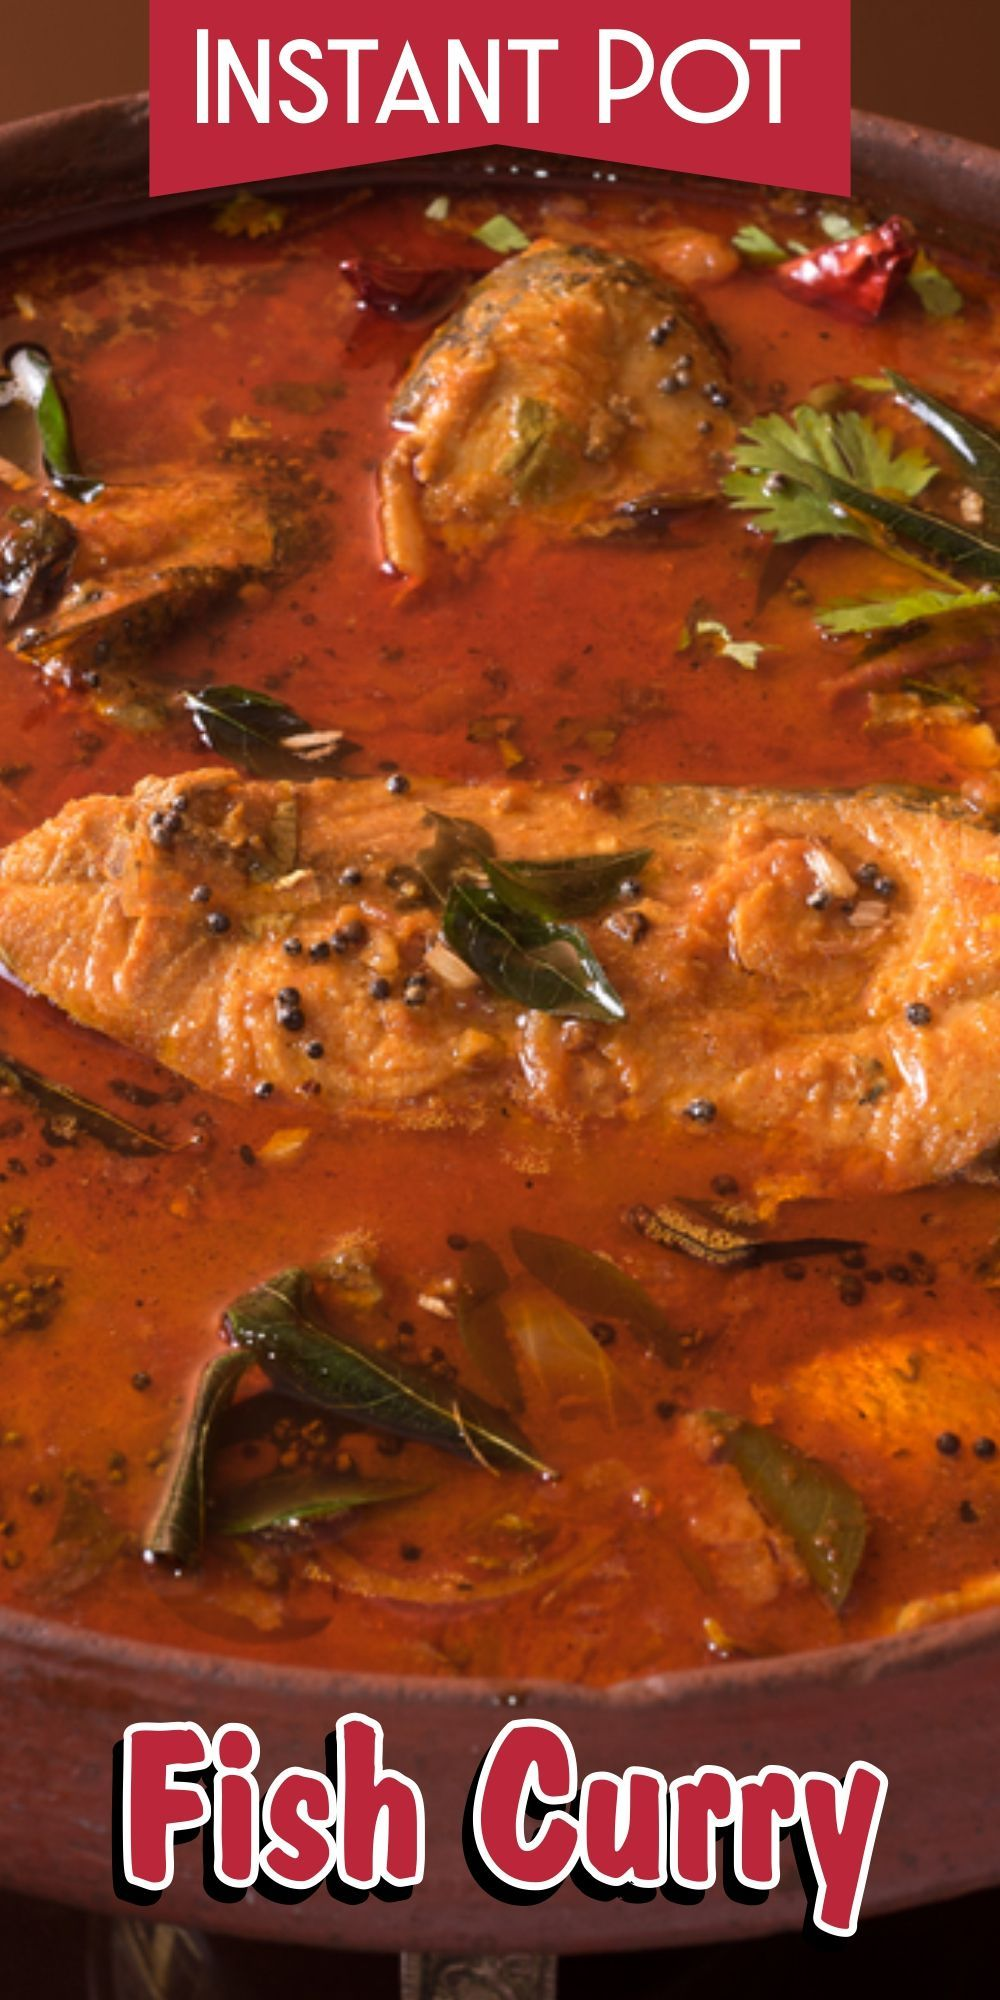 Instant Pot Fish Curry images